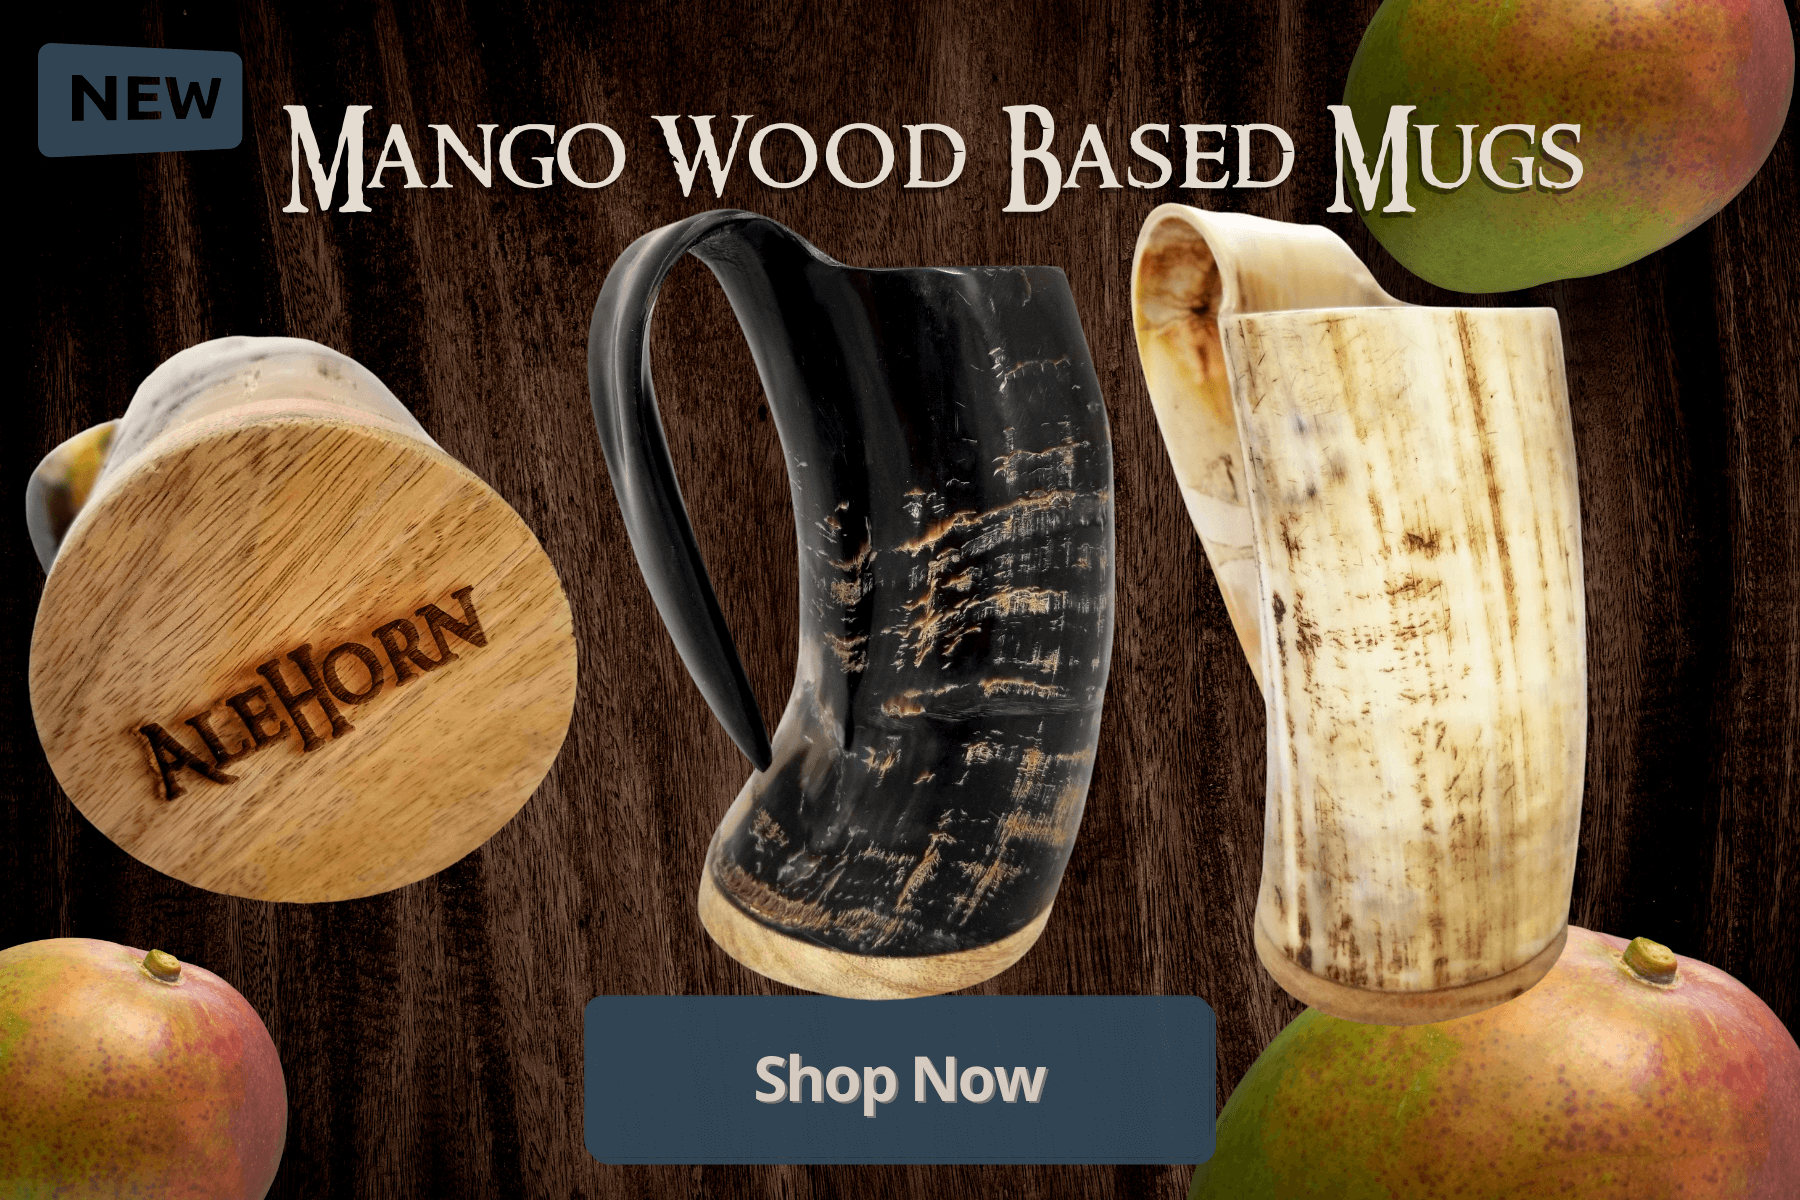 brand new large and extra large XL mango wood based drinking horns. Smooth finished viking mugs and Norse tankards will keep you full of beer or mead and they look incredibly beautiful